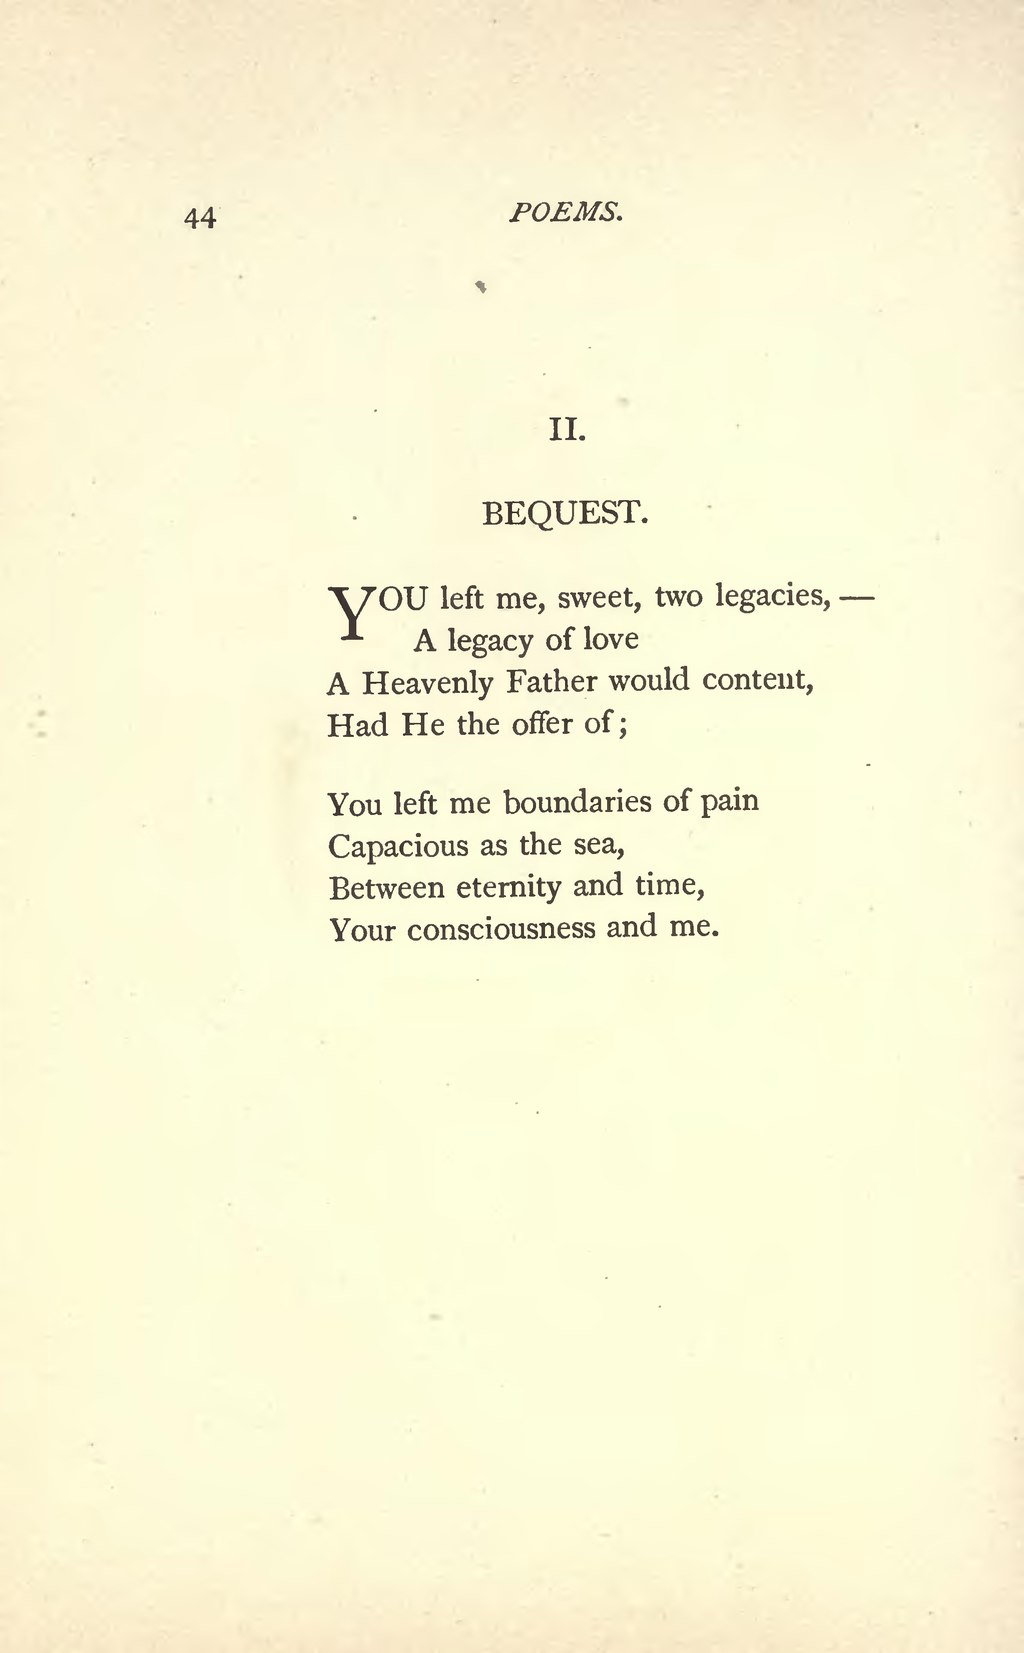 page emily dickinson poems 1890 djvu 52 wikisource